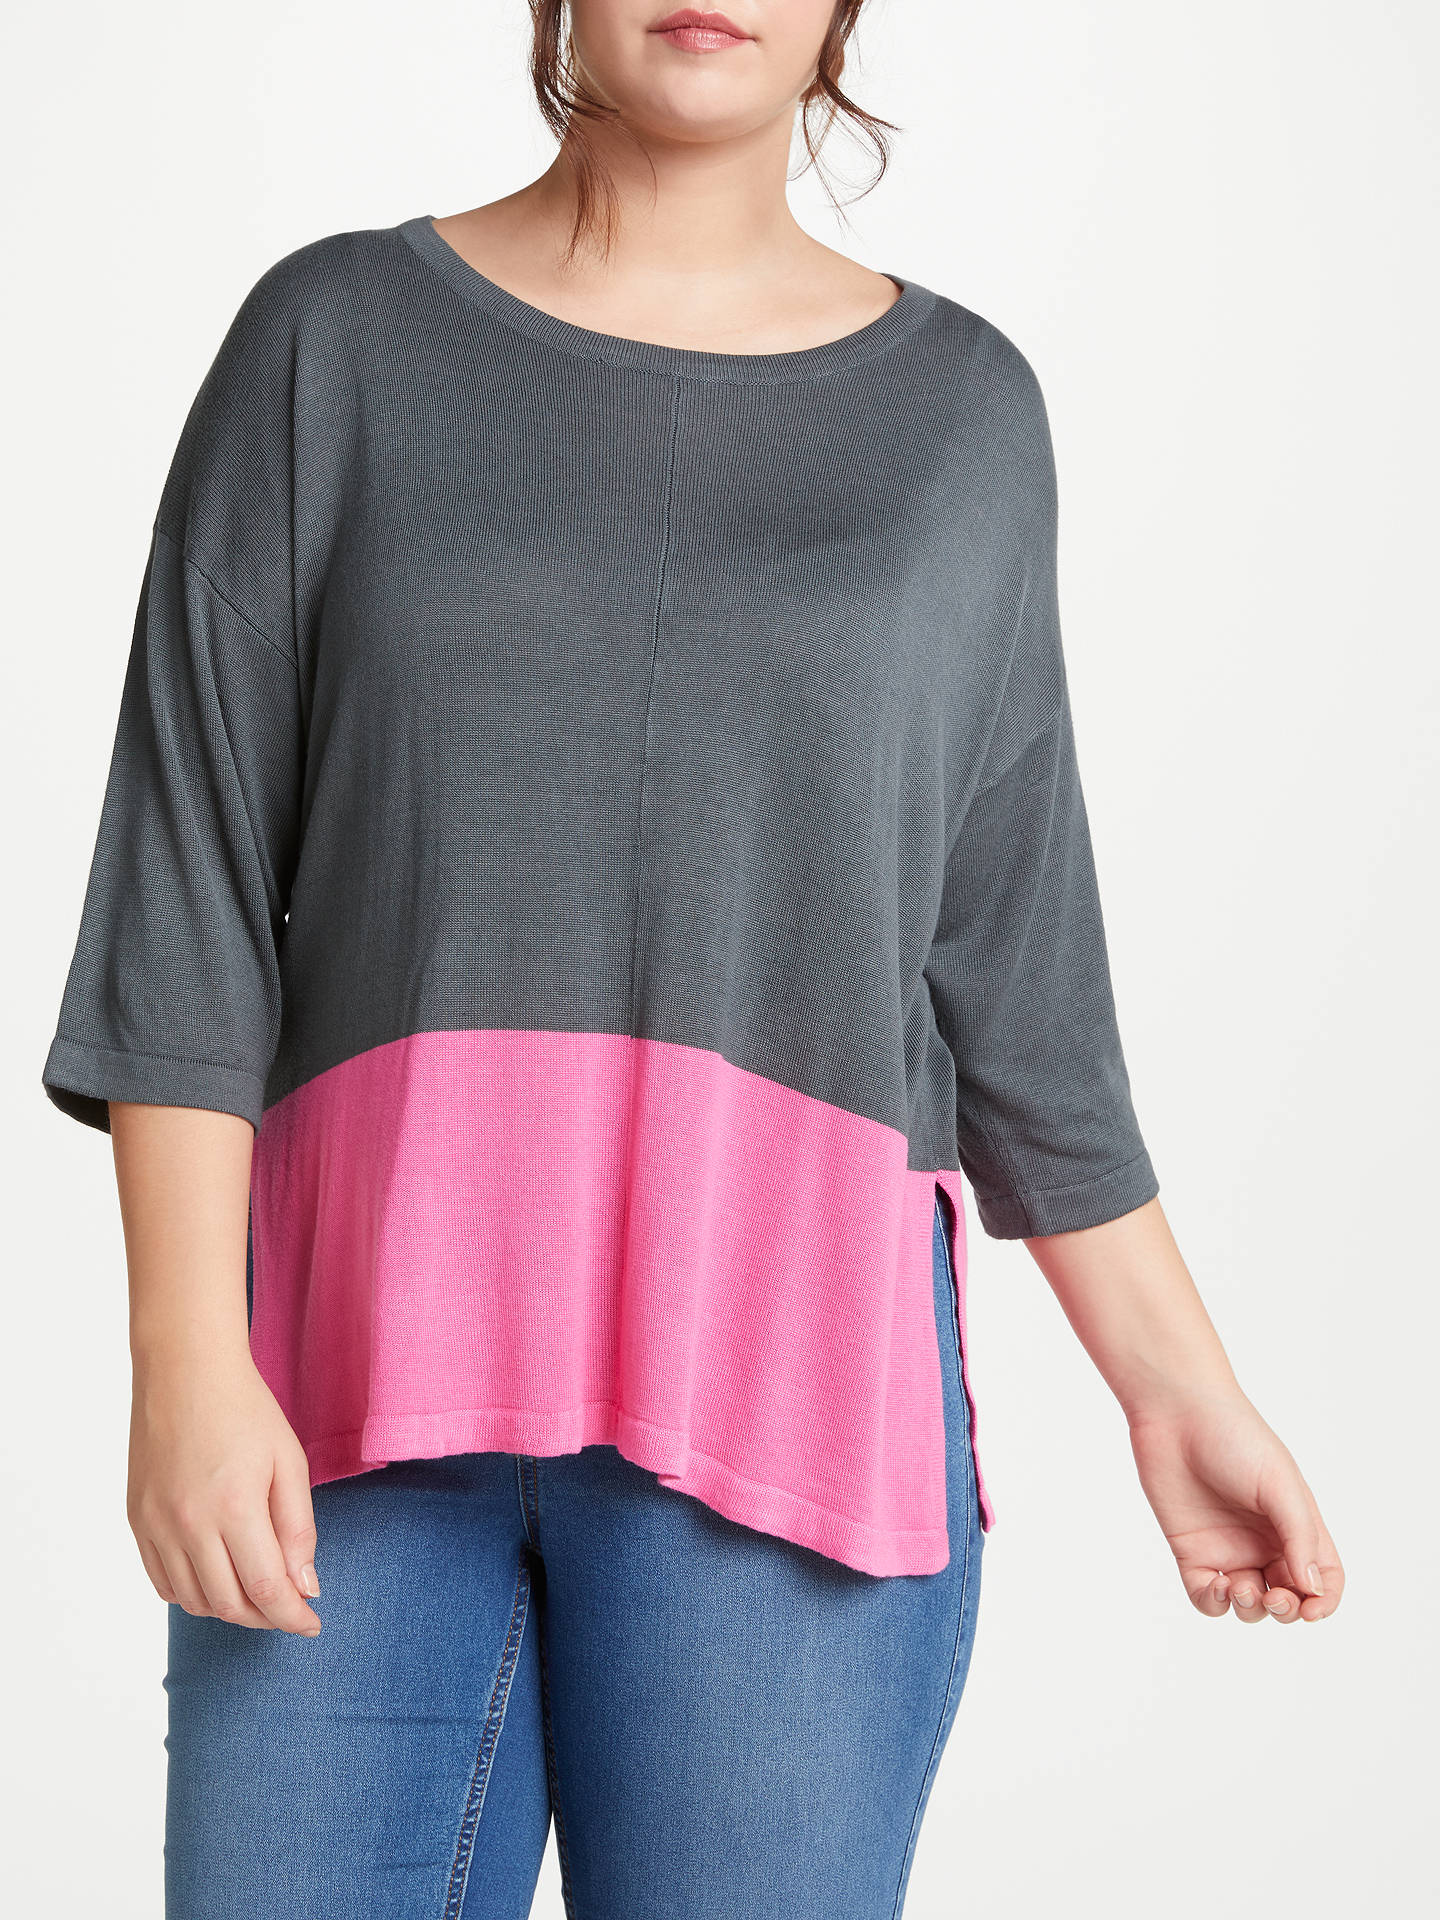 3234a62ab8 Buy JUNAROSE Newsake Pullover Knit Jumper, Charcoal, 14-16 Online at  johnlewis.